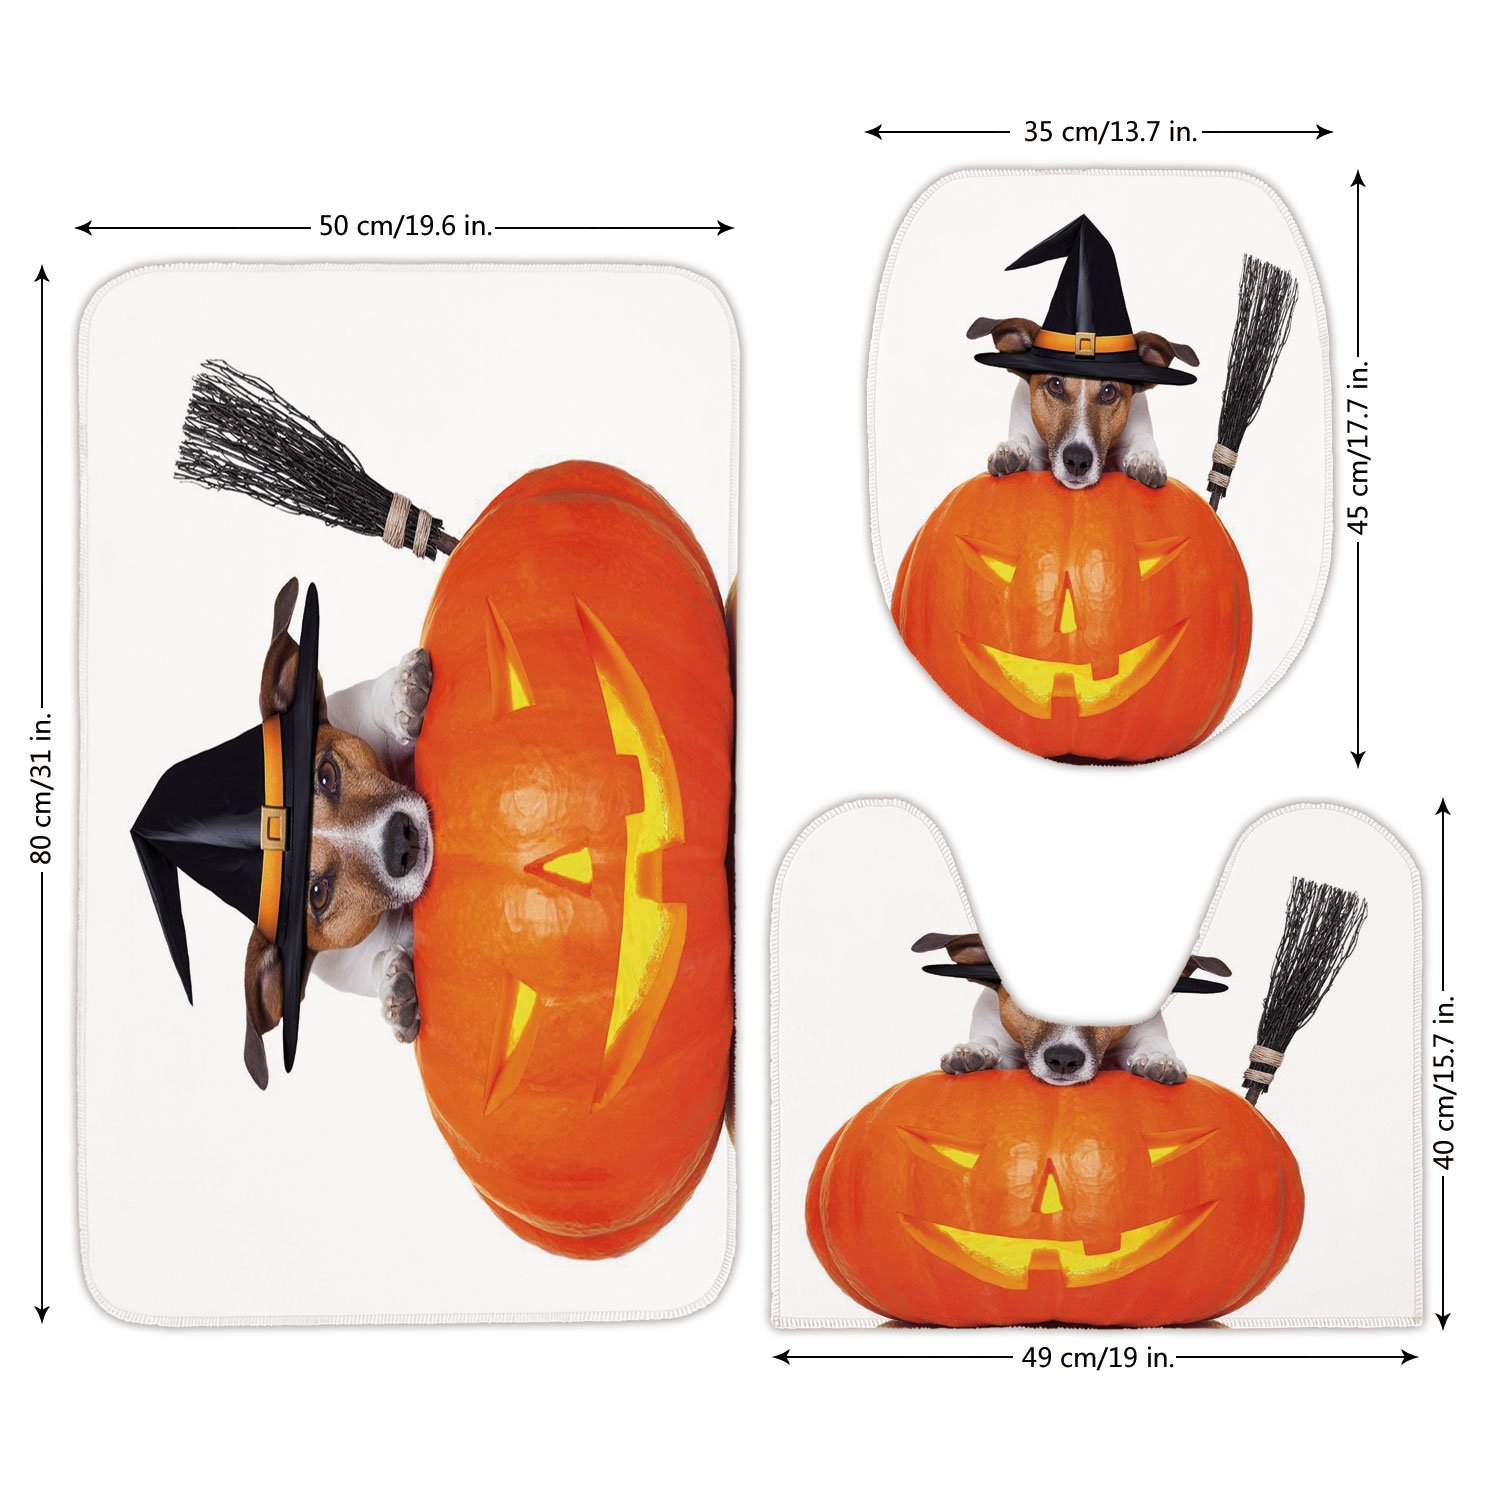 3 Piece Bathroom Mat Set,Halloween,Witch Dog with a Broomstick on Large Pumpkin Fun Humorous Hilarious Animal Print,Multicolor,Bath Mat,Bathroom Carpet Rug,Non-Slip